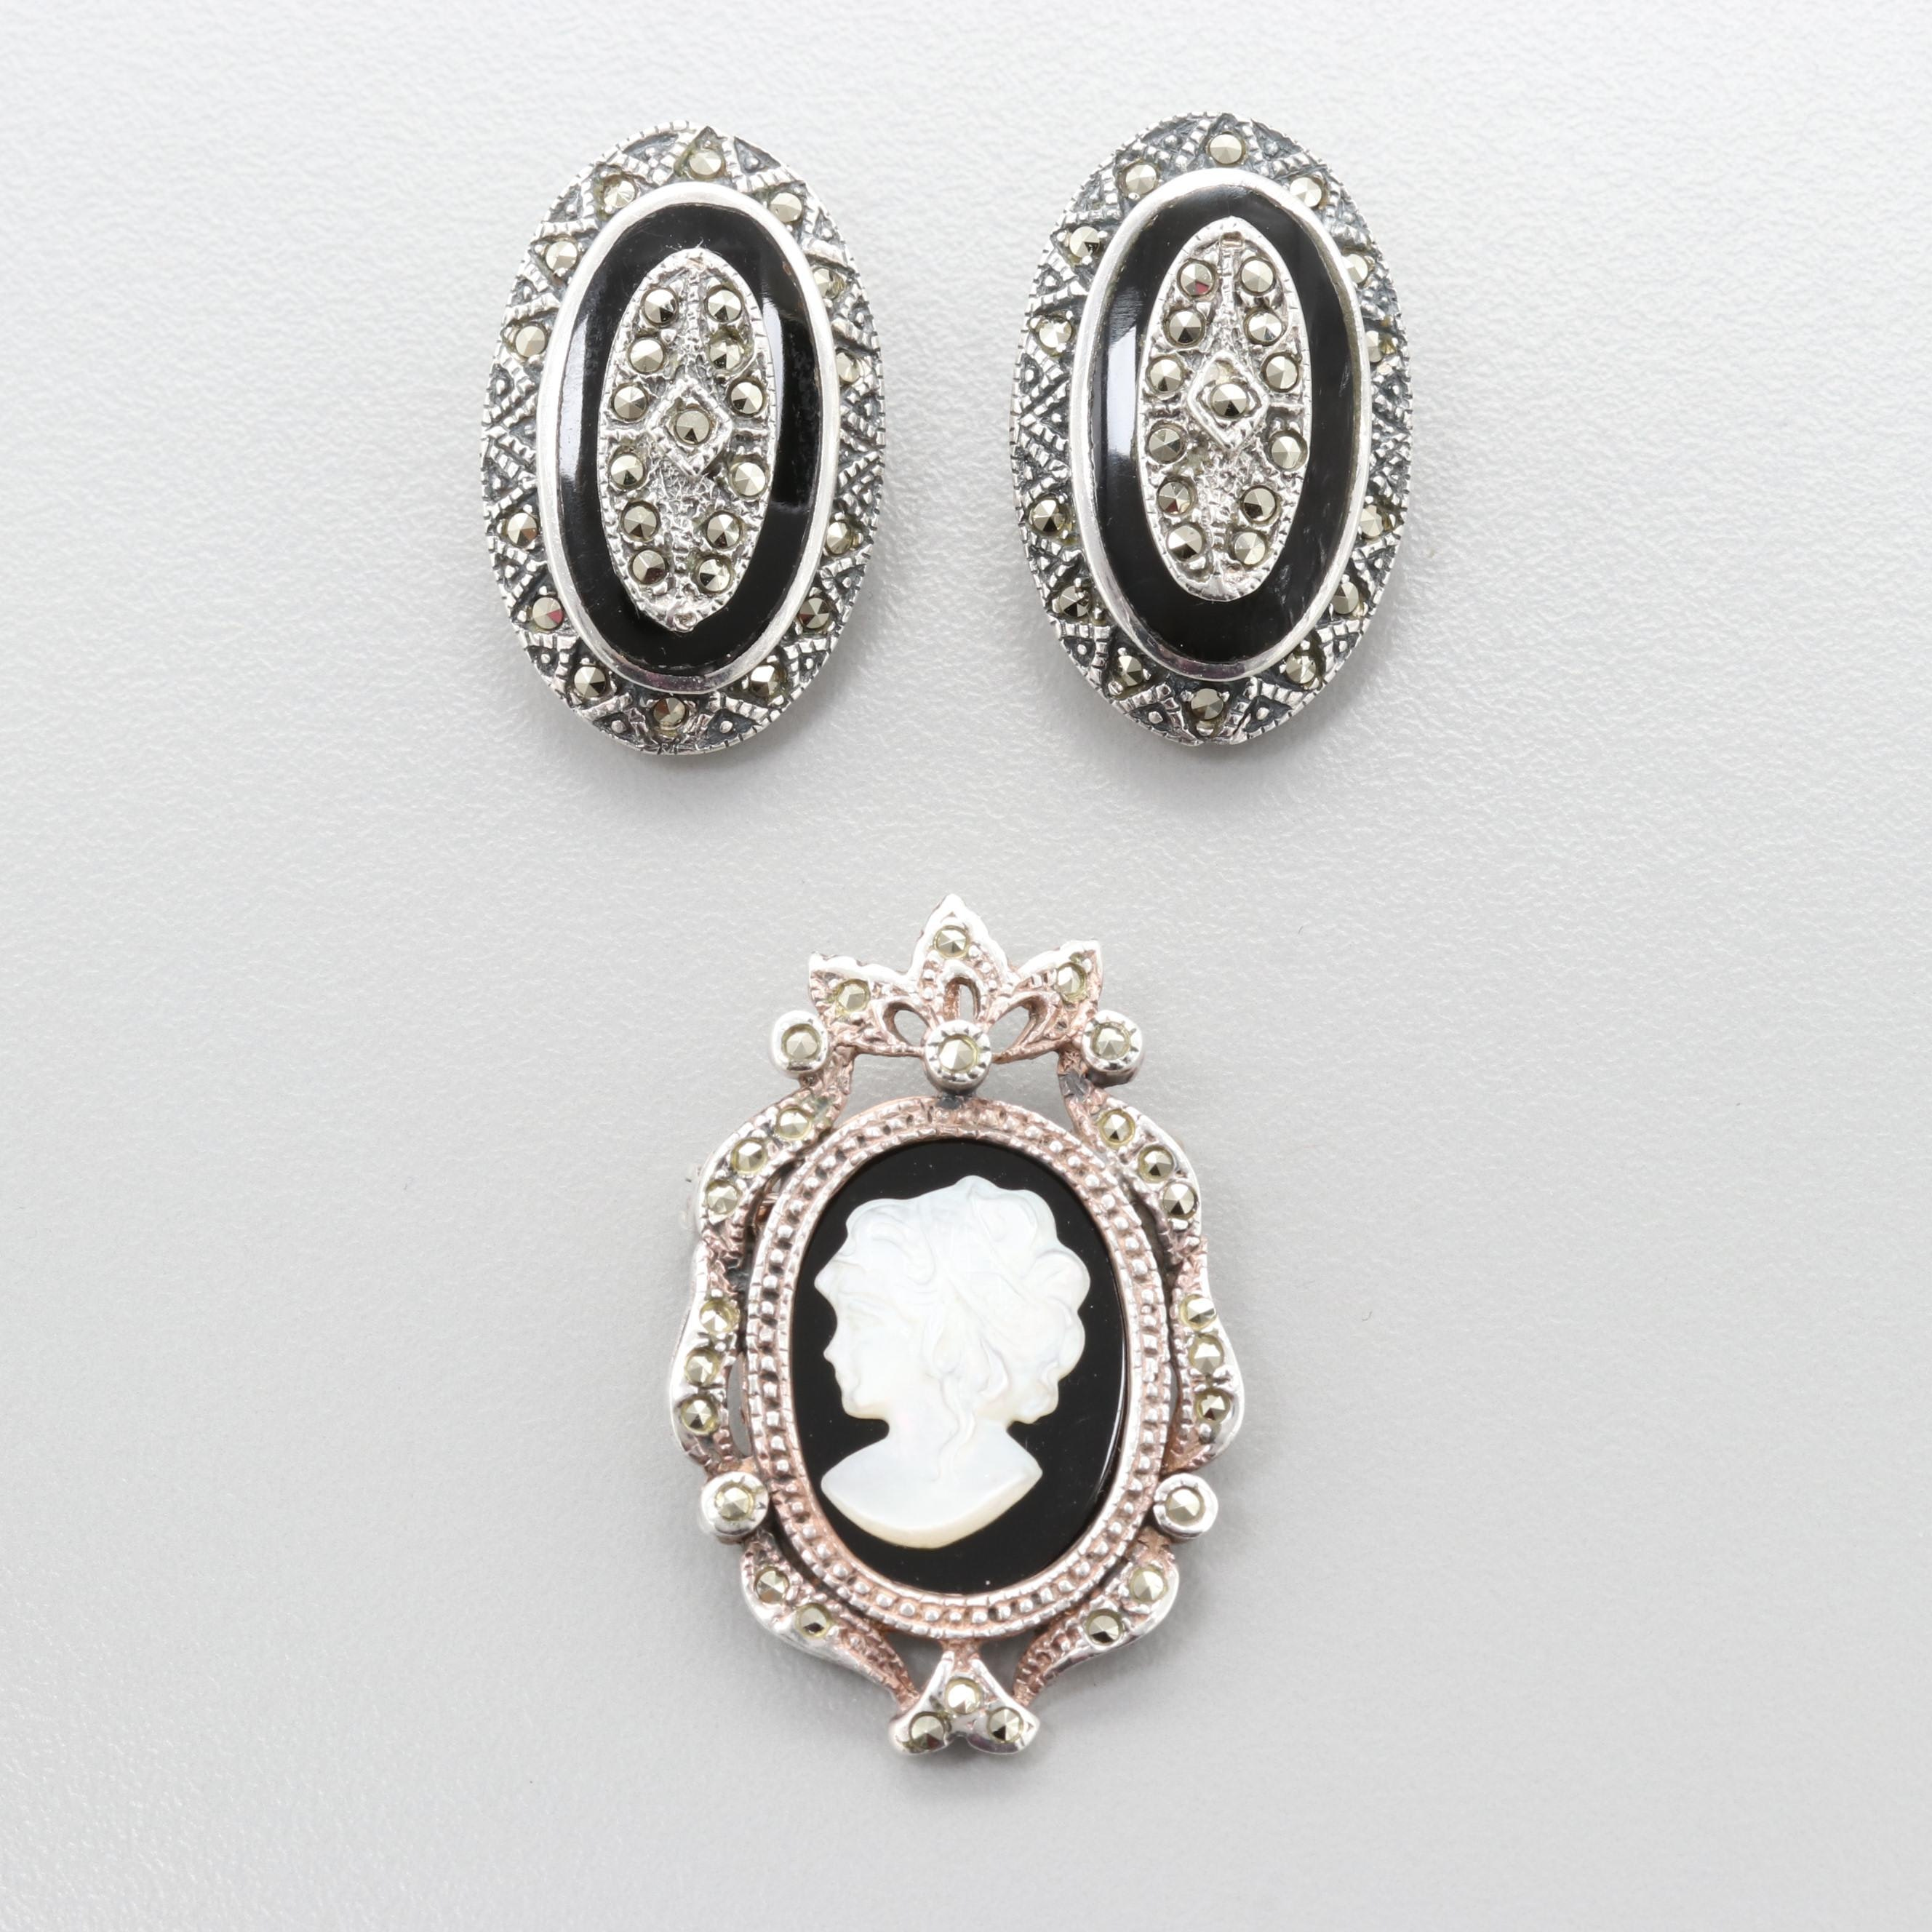 Sterling Silver Mother of Pearl, Marcasite and Black Onyx Brooch & Earrings